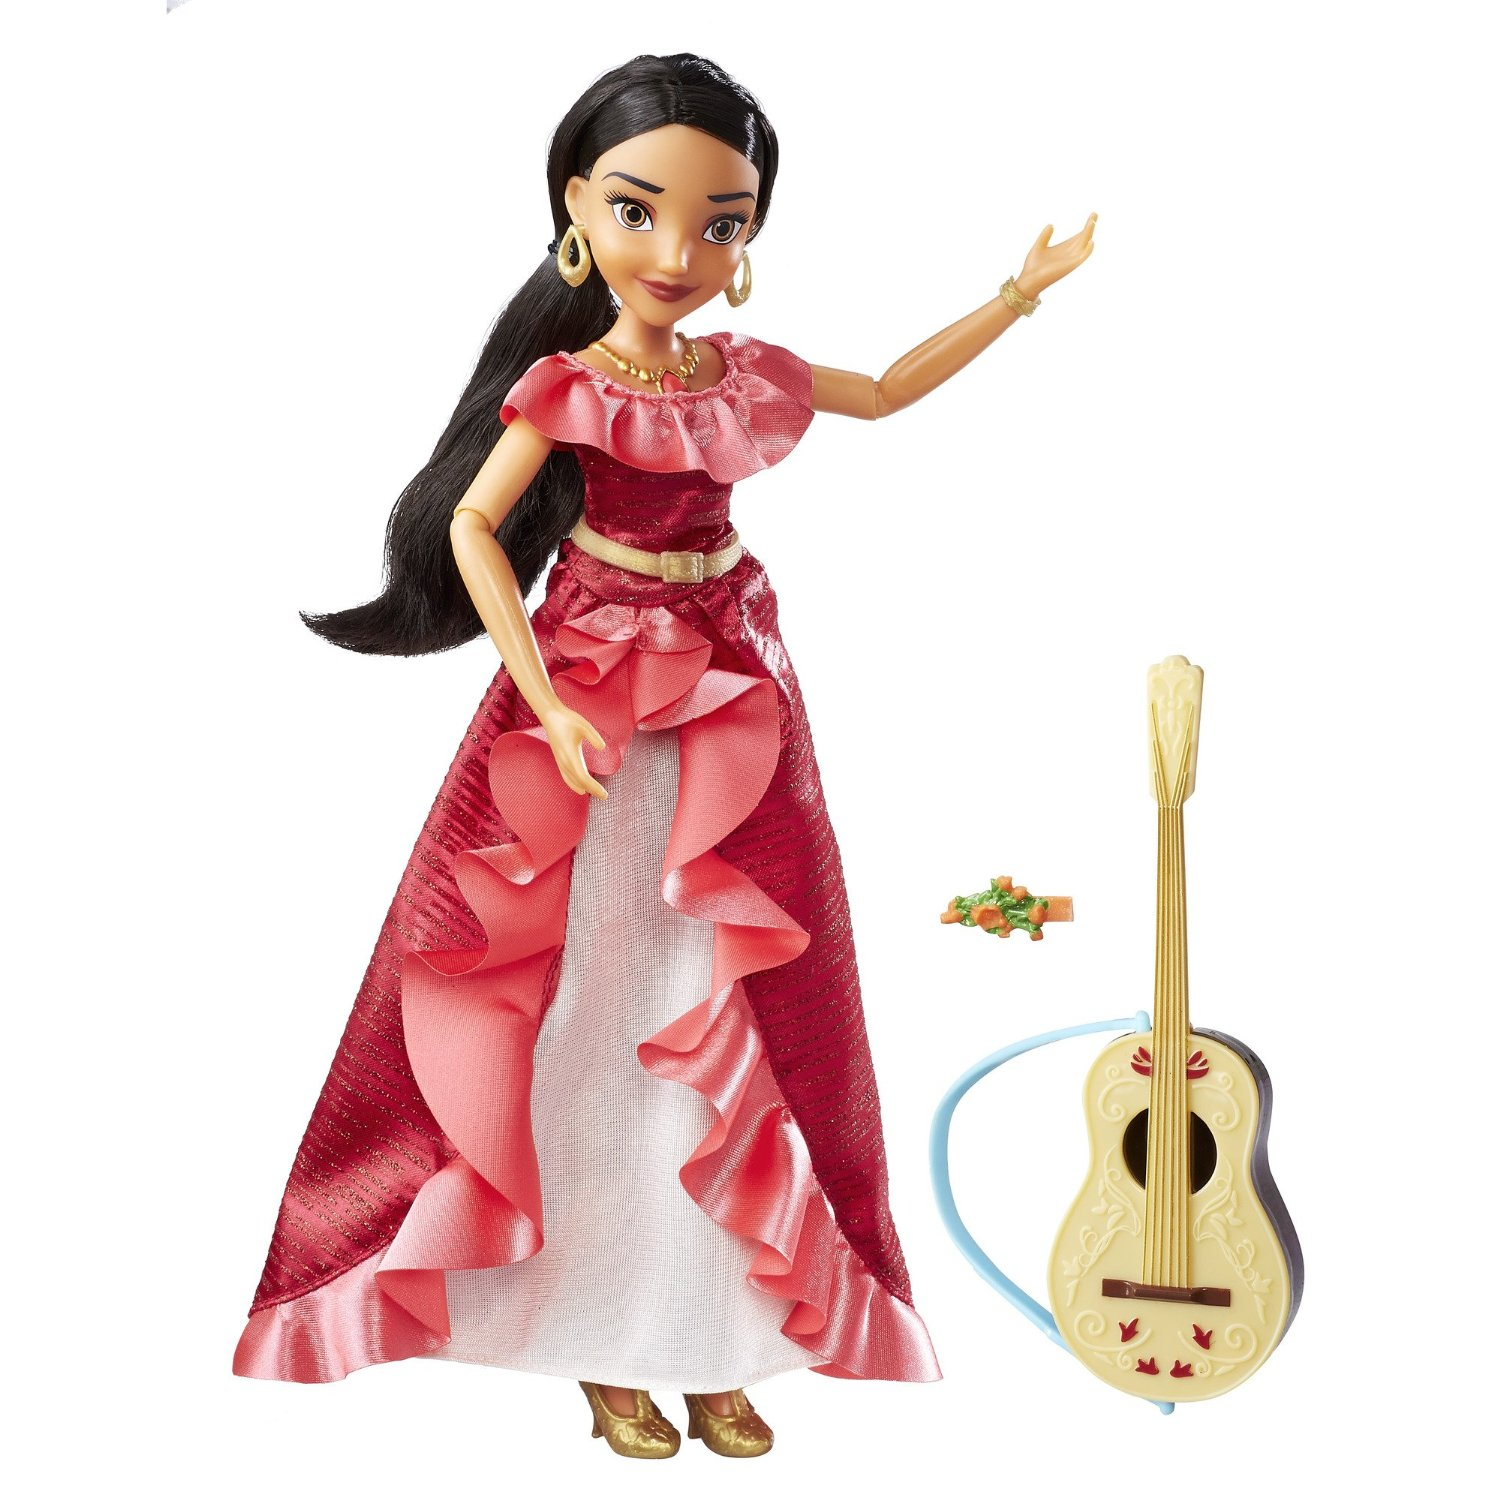 Toy Guitar Target Target Save 30 Off On Disney Elena Tangled Toys Today Only